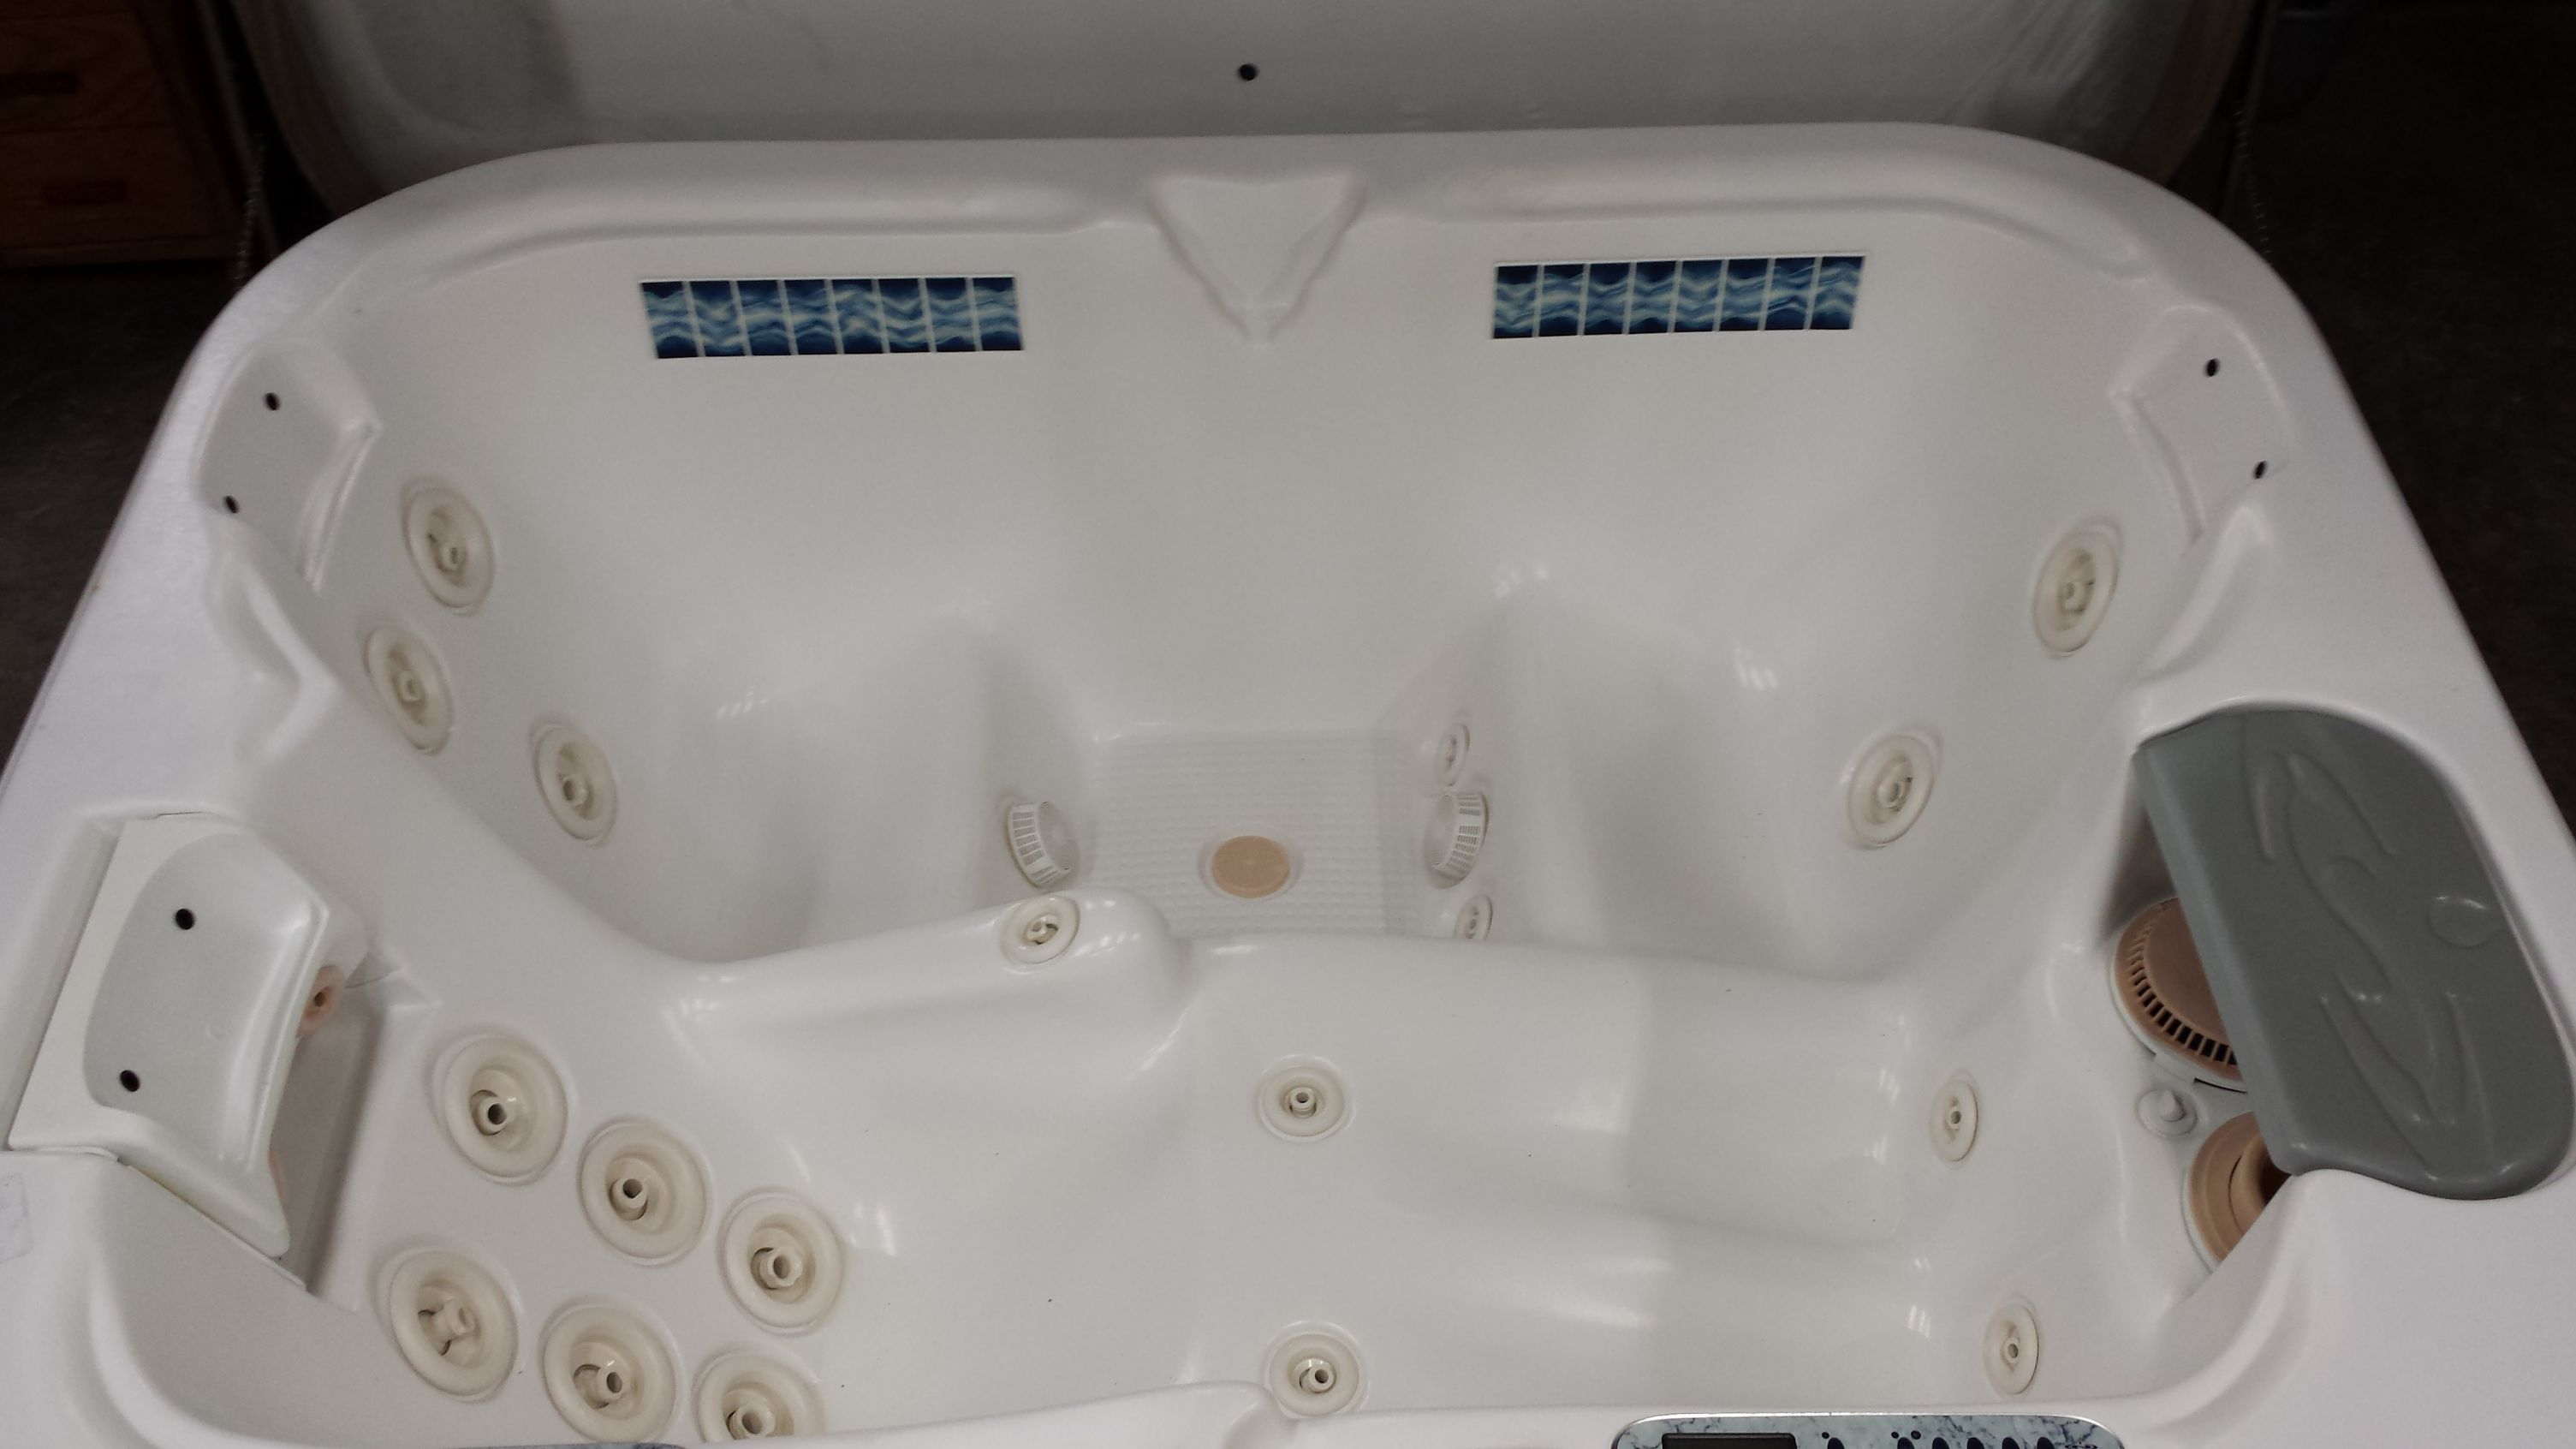 products sale hot tub for swim city used stylish sauna and more rapid in spa read img